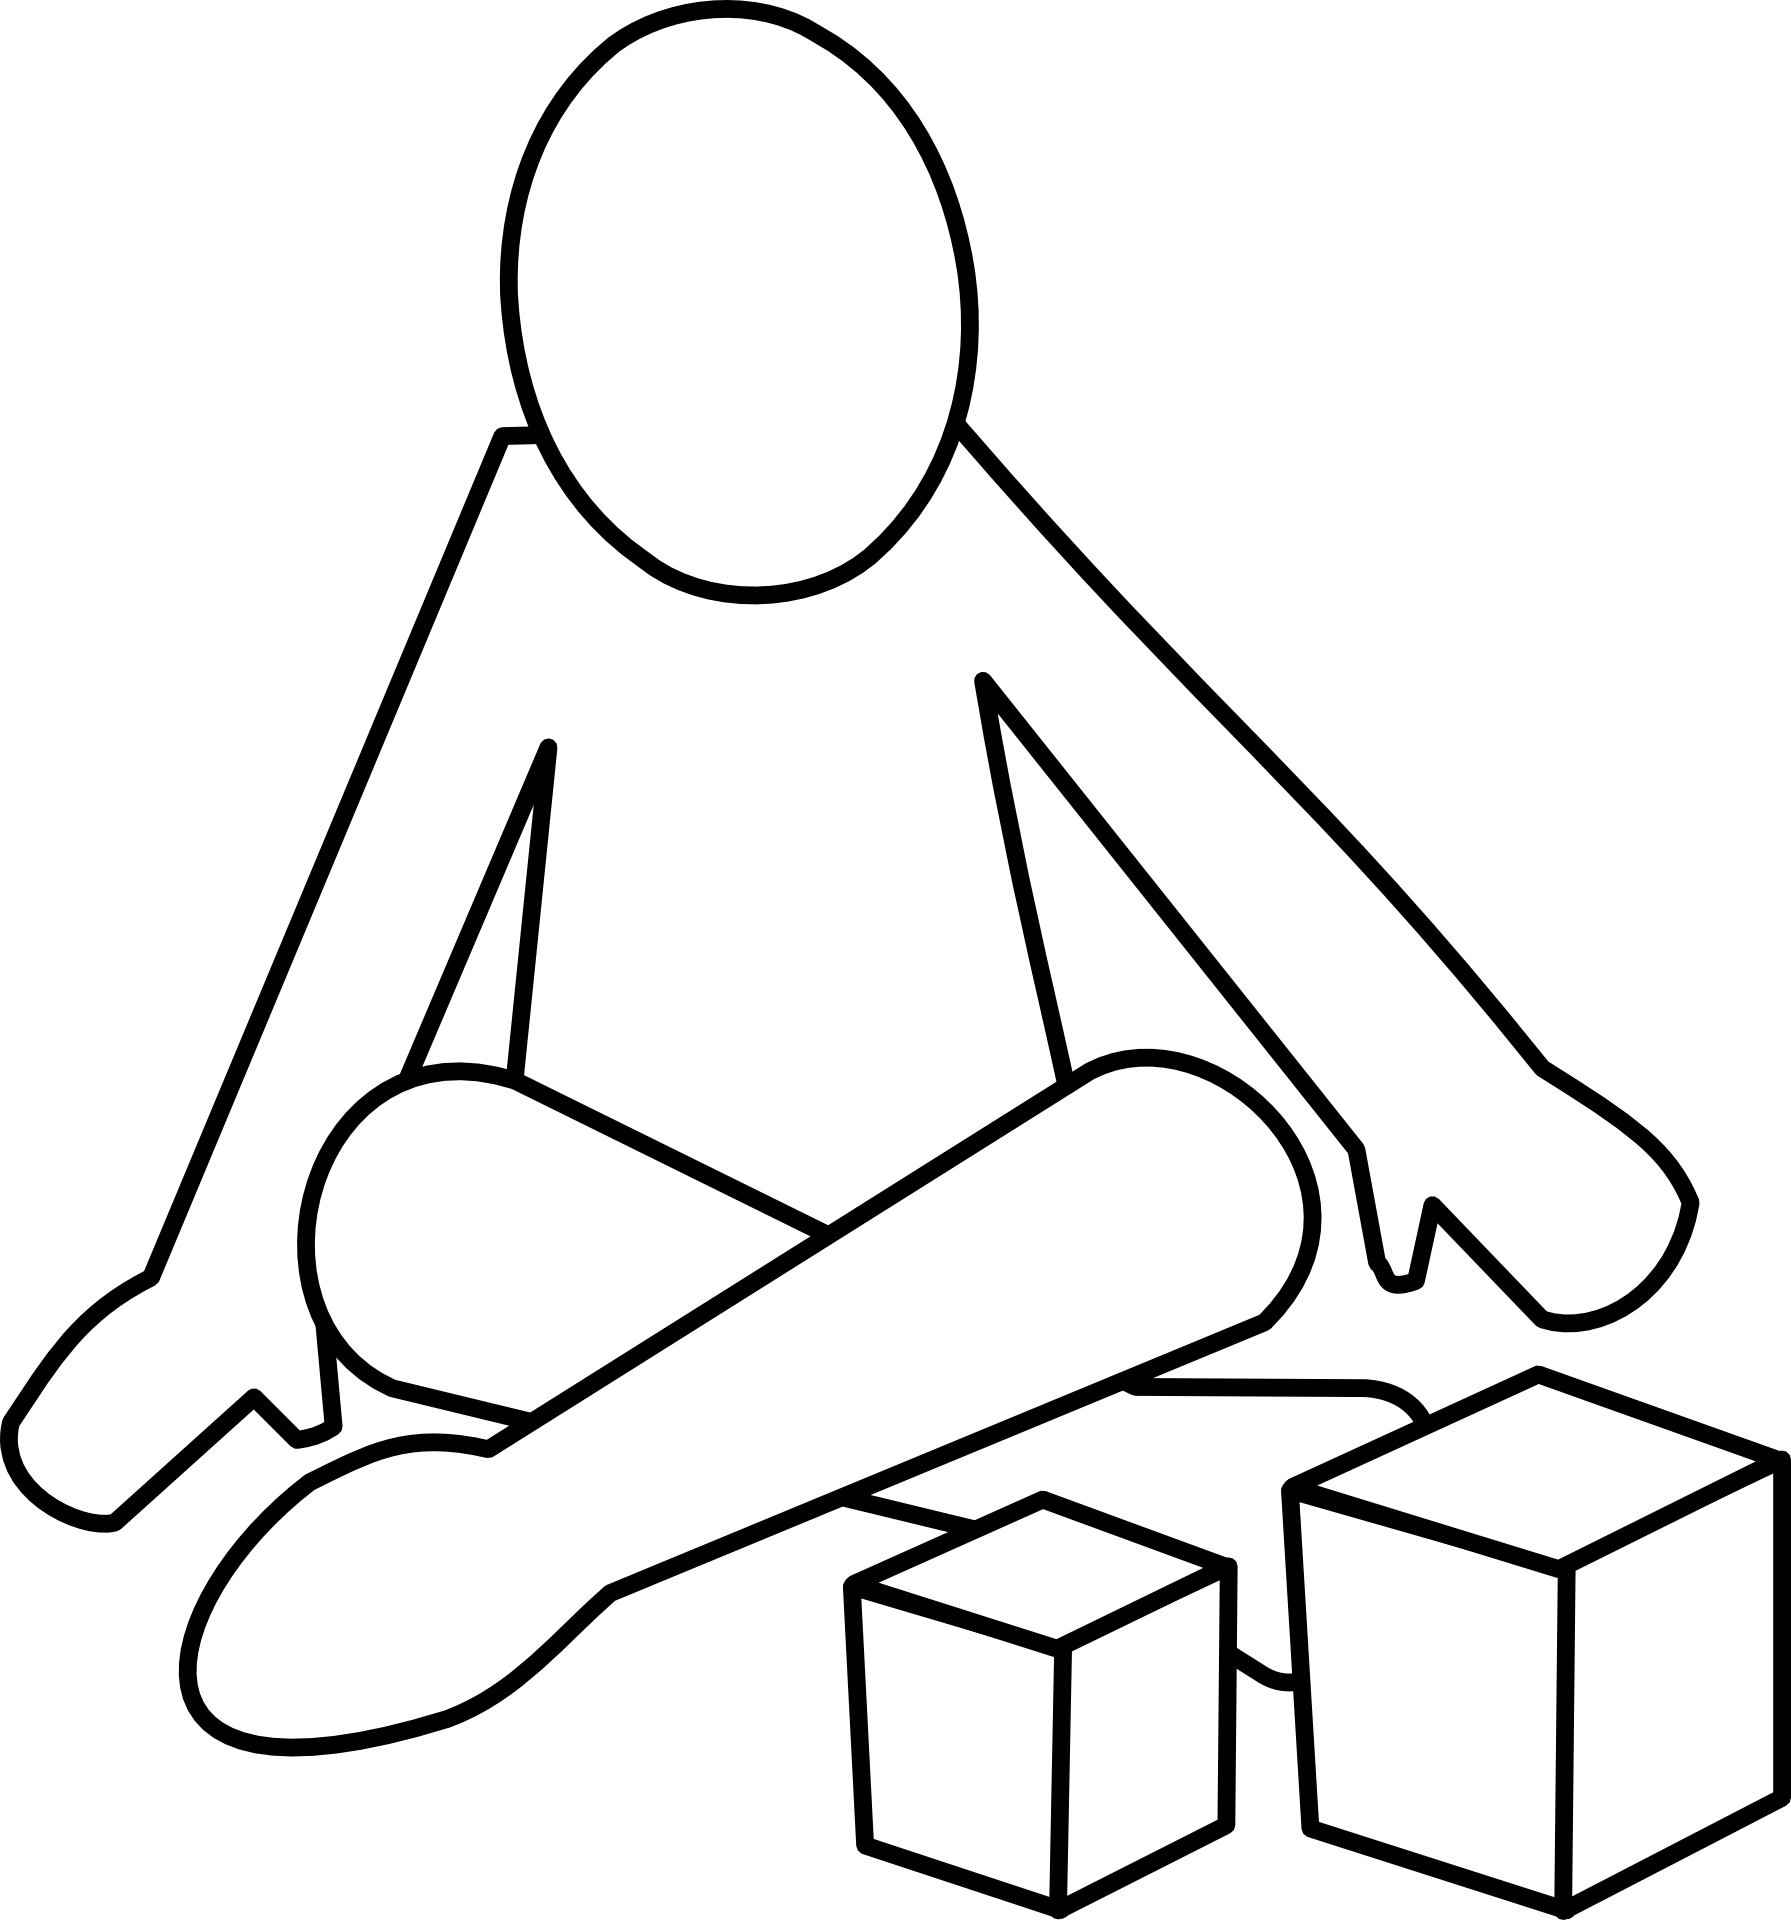 Clipart child sitting criss cross clip transparent stock Cross legged child sitting free image clip transparent stock